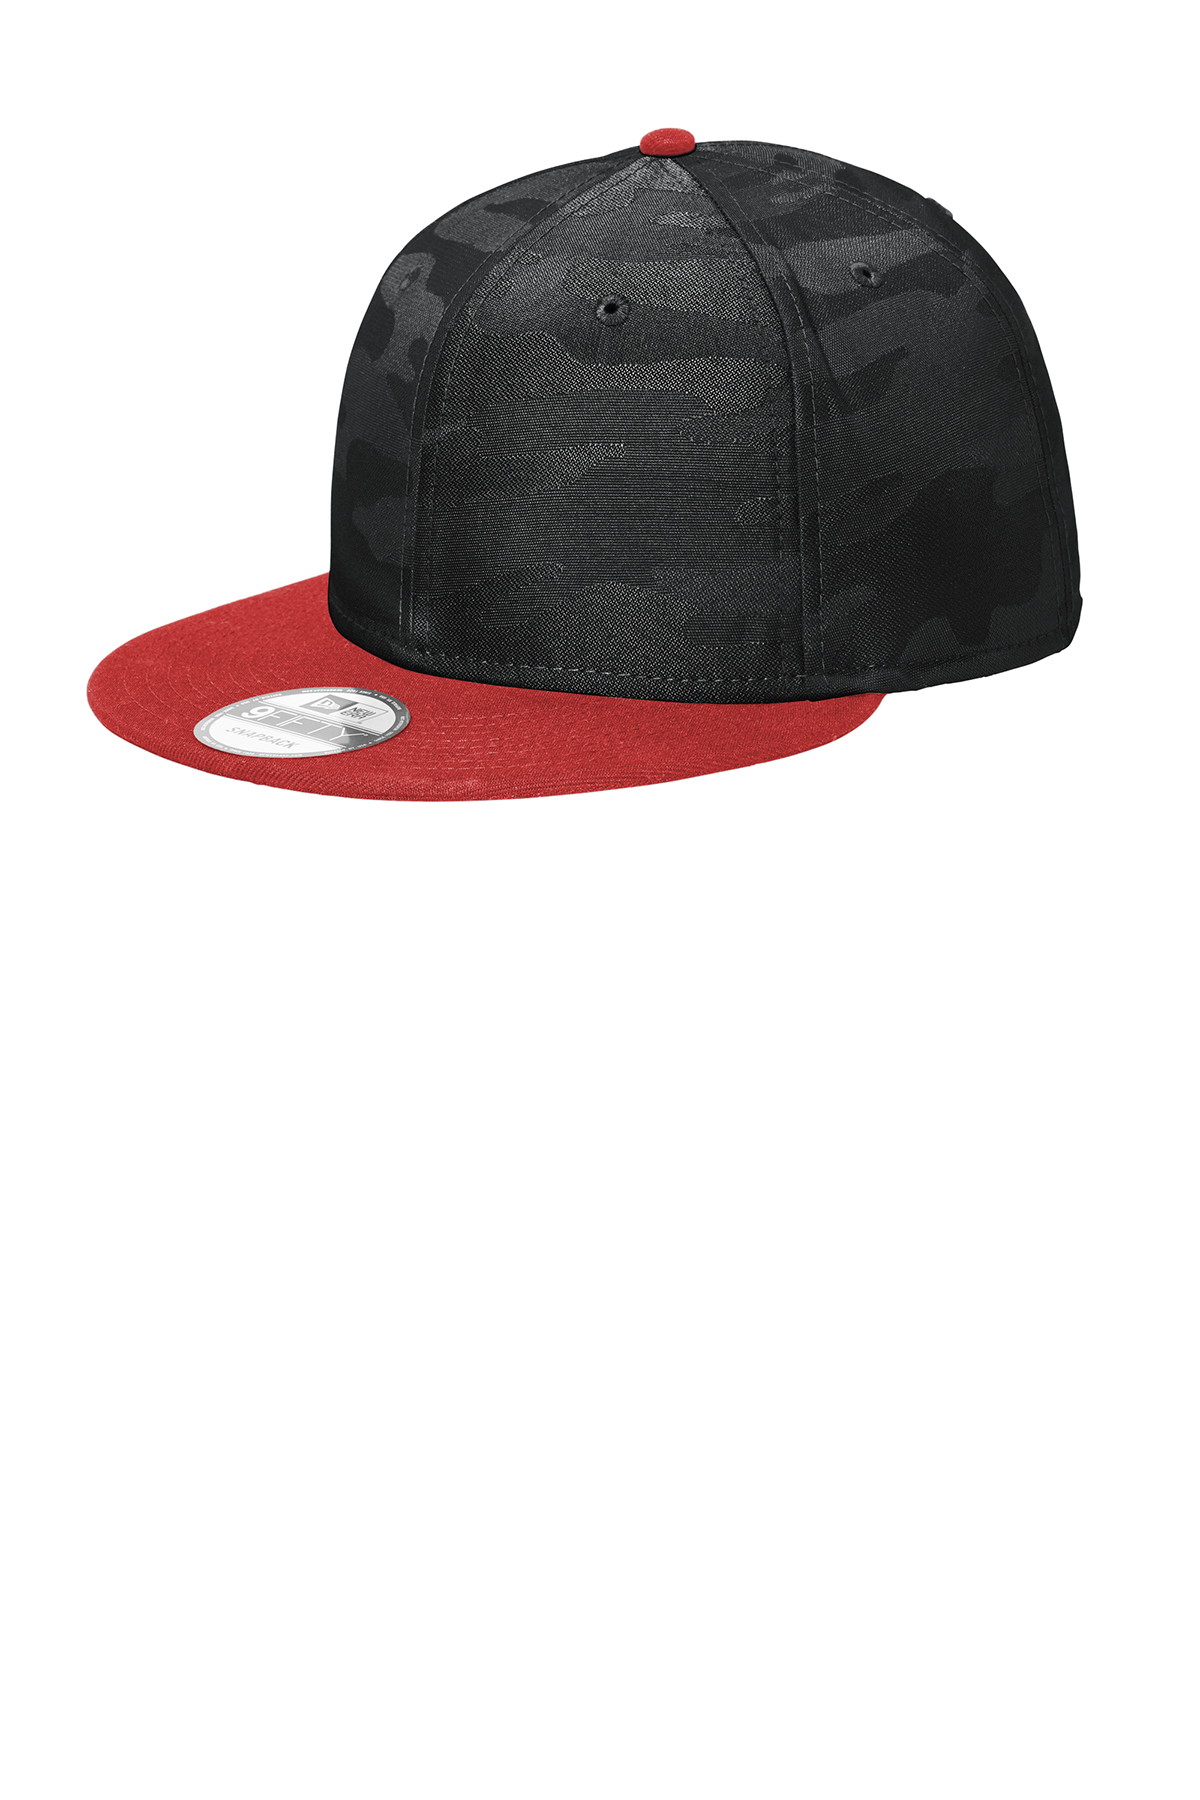 New Era NE407 - Camo Flat Bill Snapback Cap